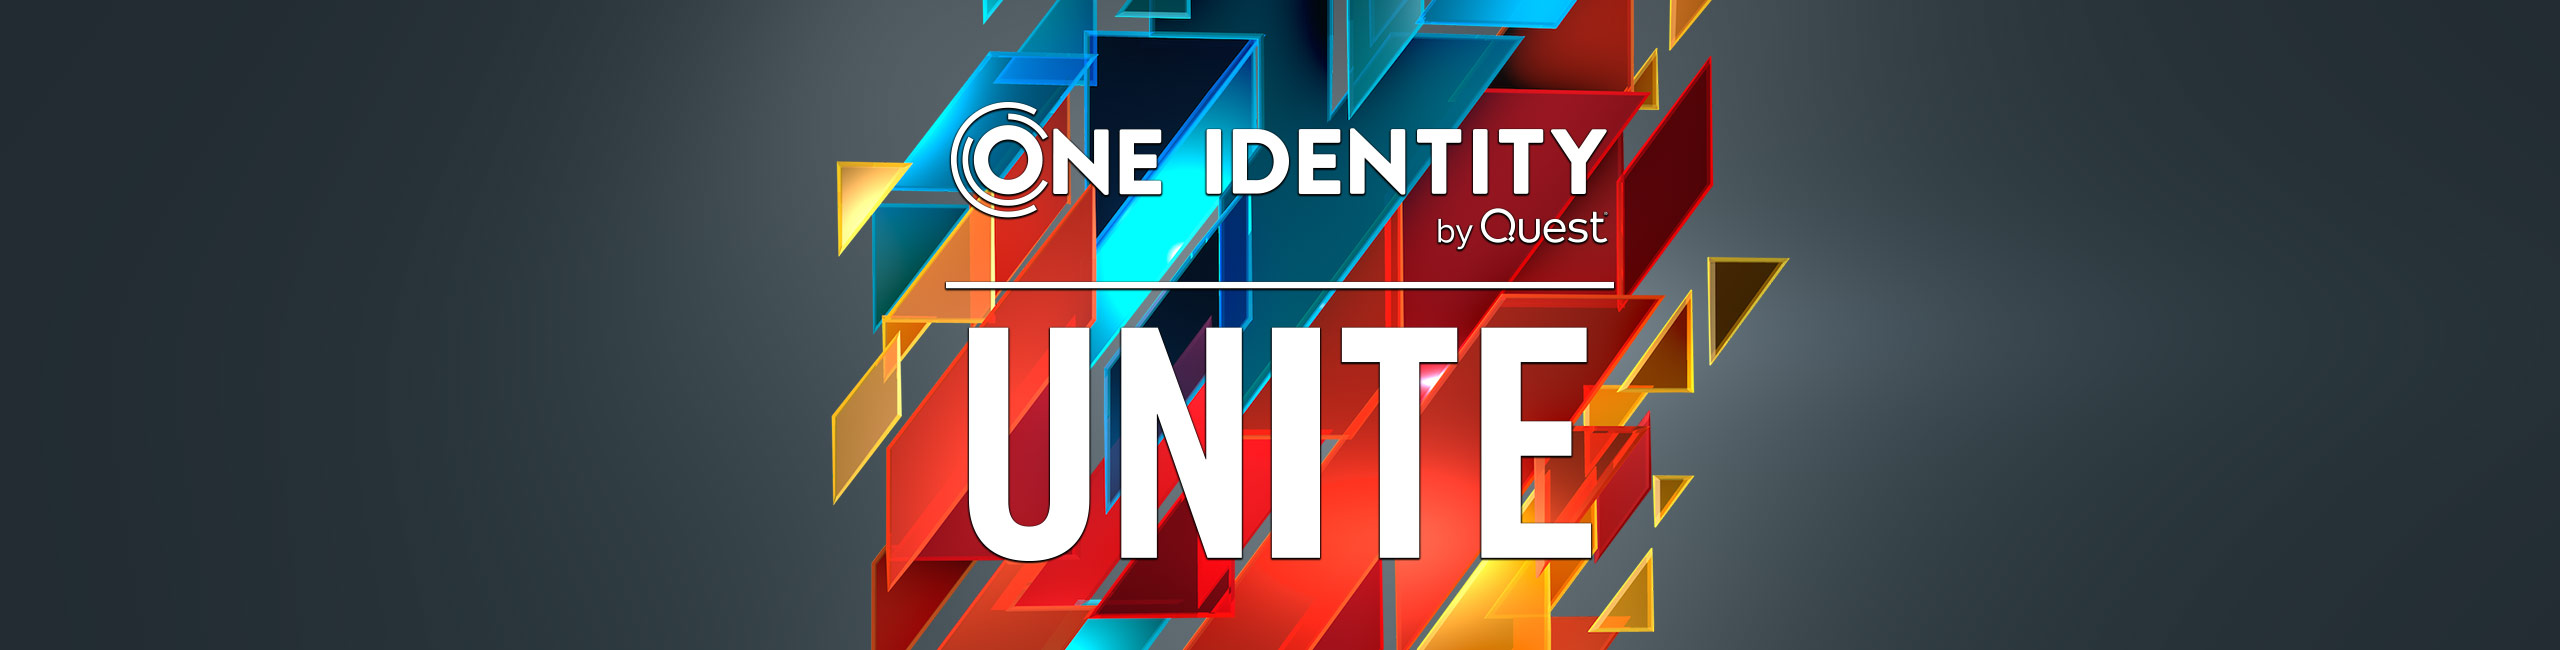 One Identity UNITE Partner and User Conference